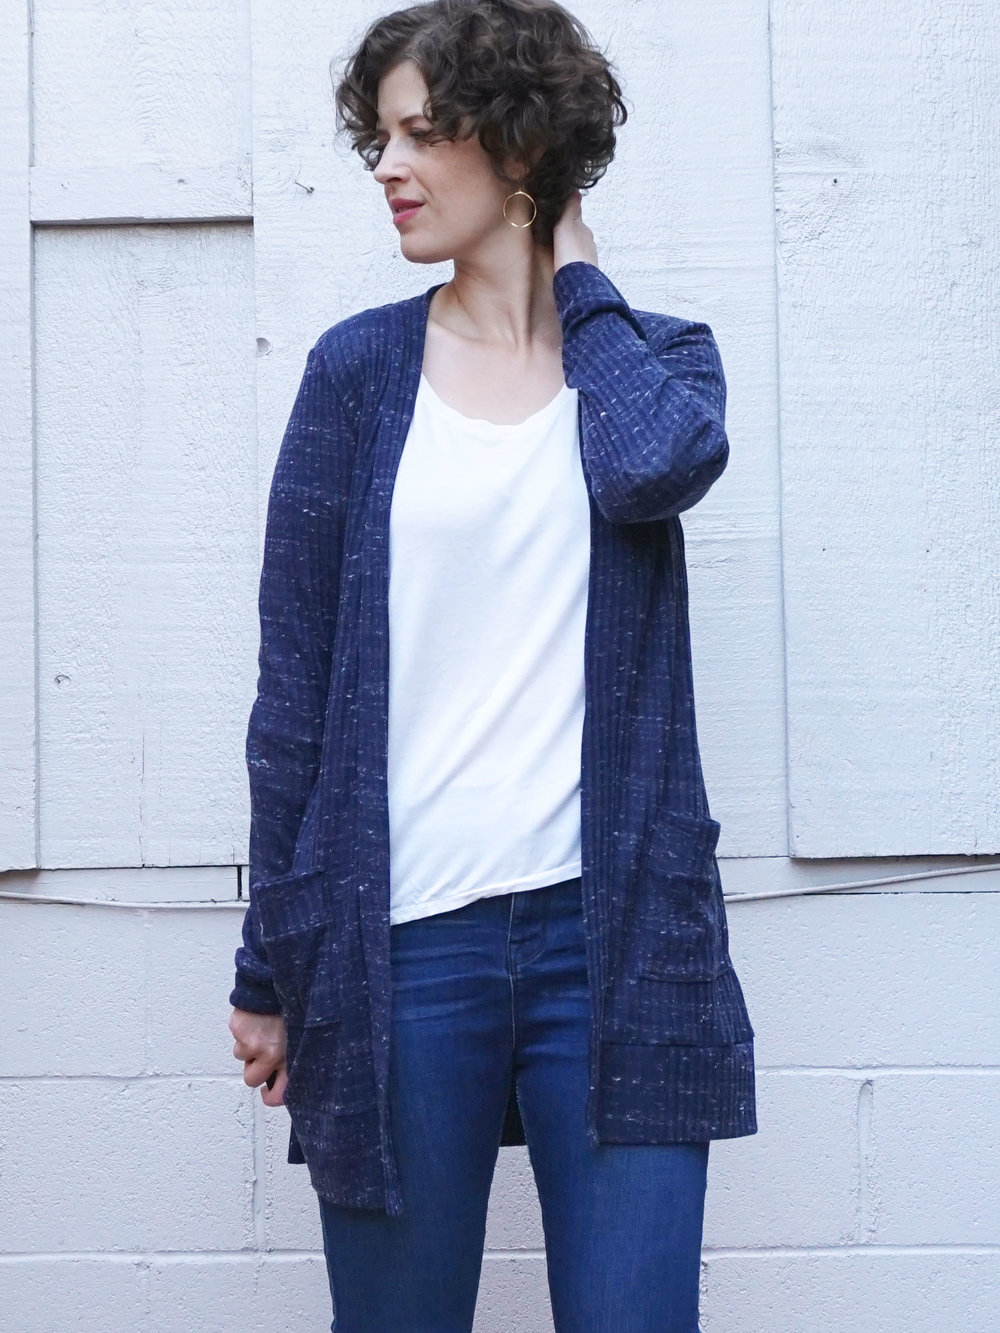 DIY Layering Cardigan – The Blackwood Cardigan by Helen's Closet | Sew DIY